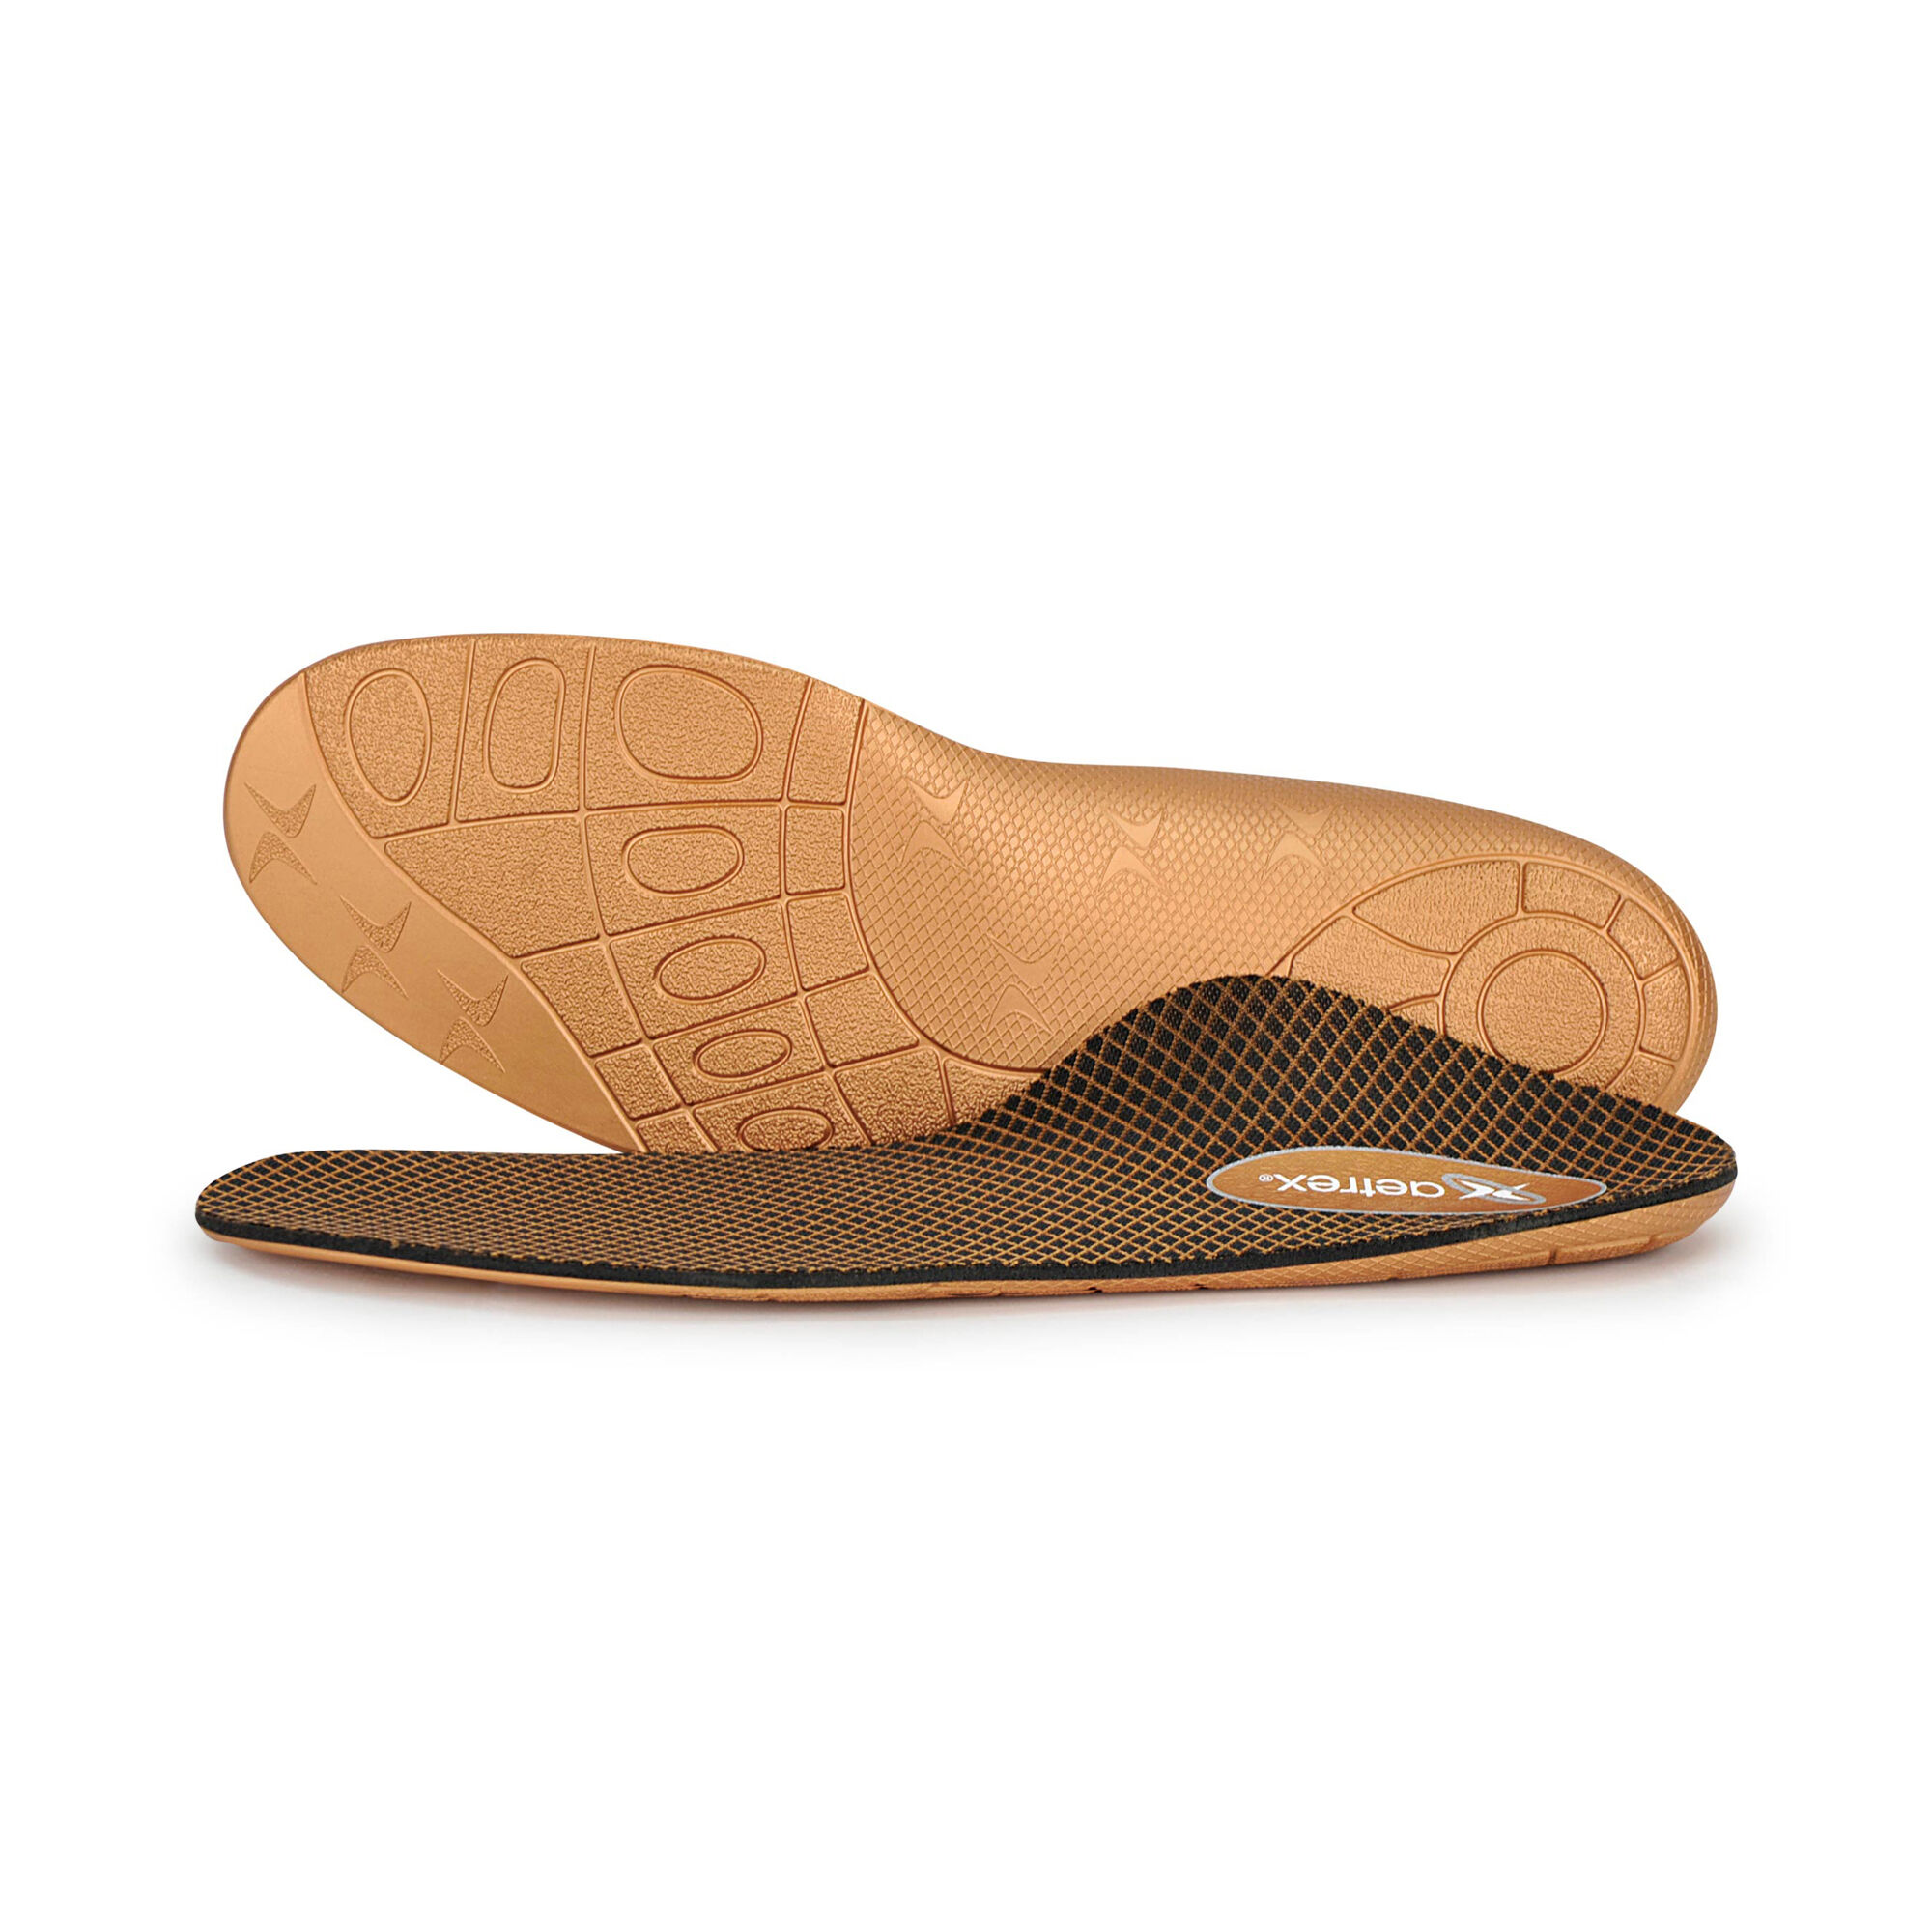 Compete Posted Orthotics